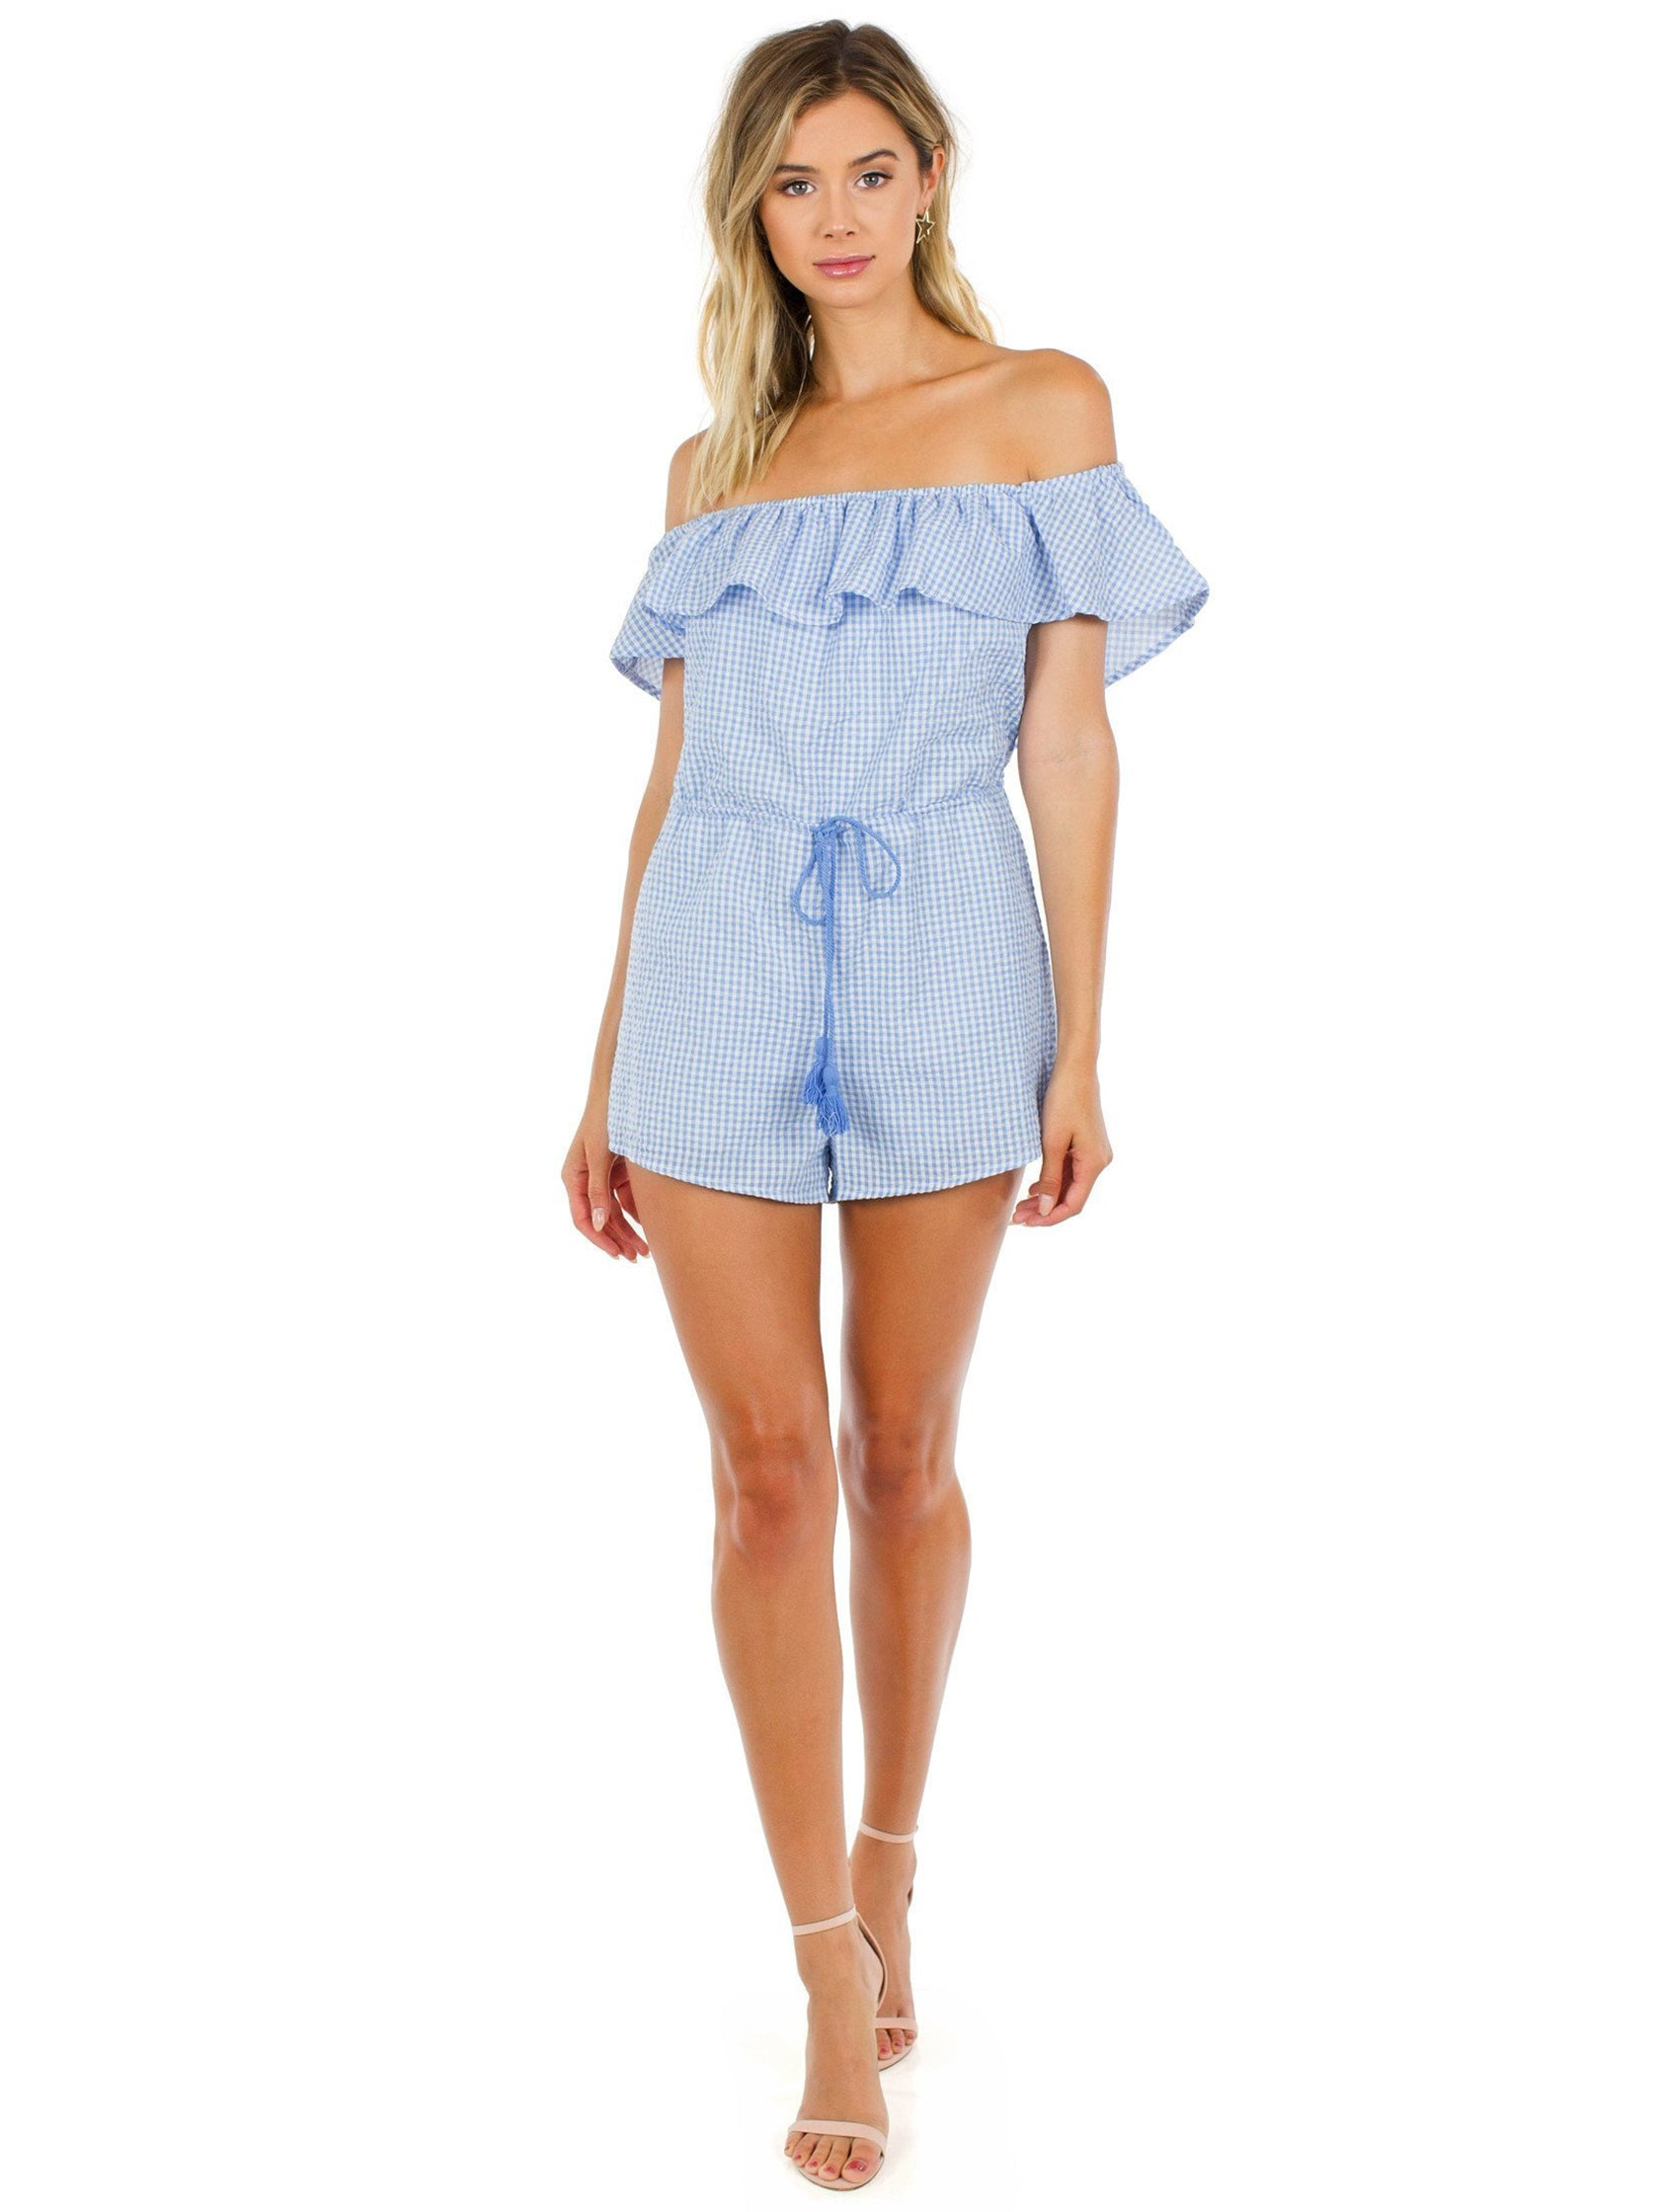 Girl outfit in a romper rental from FashionPass called Going Gingham Romper